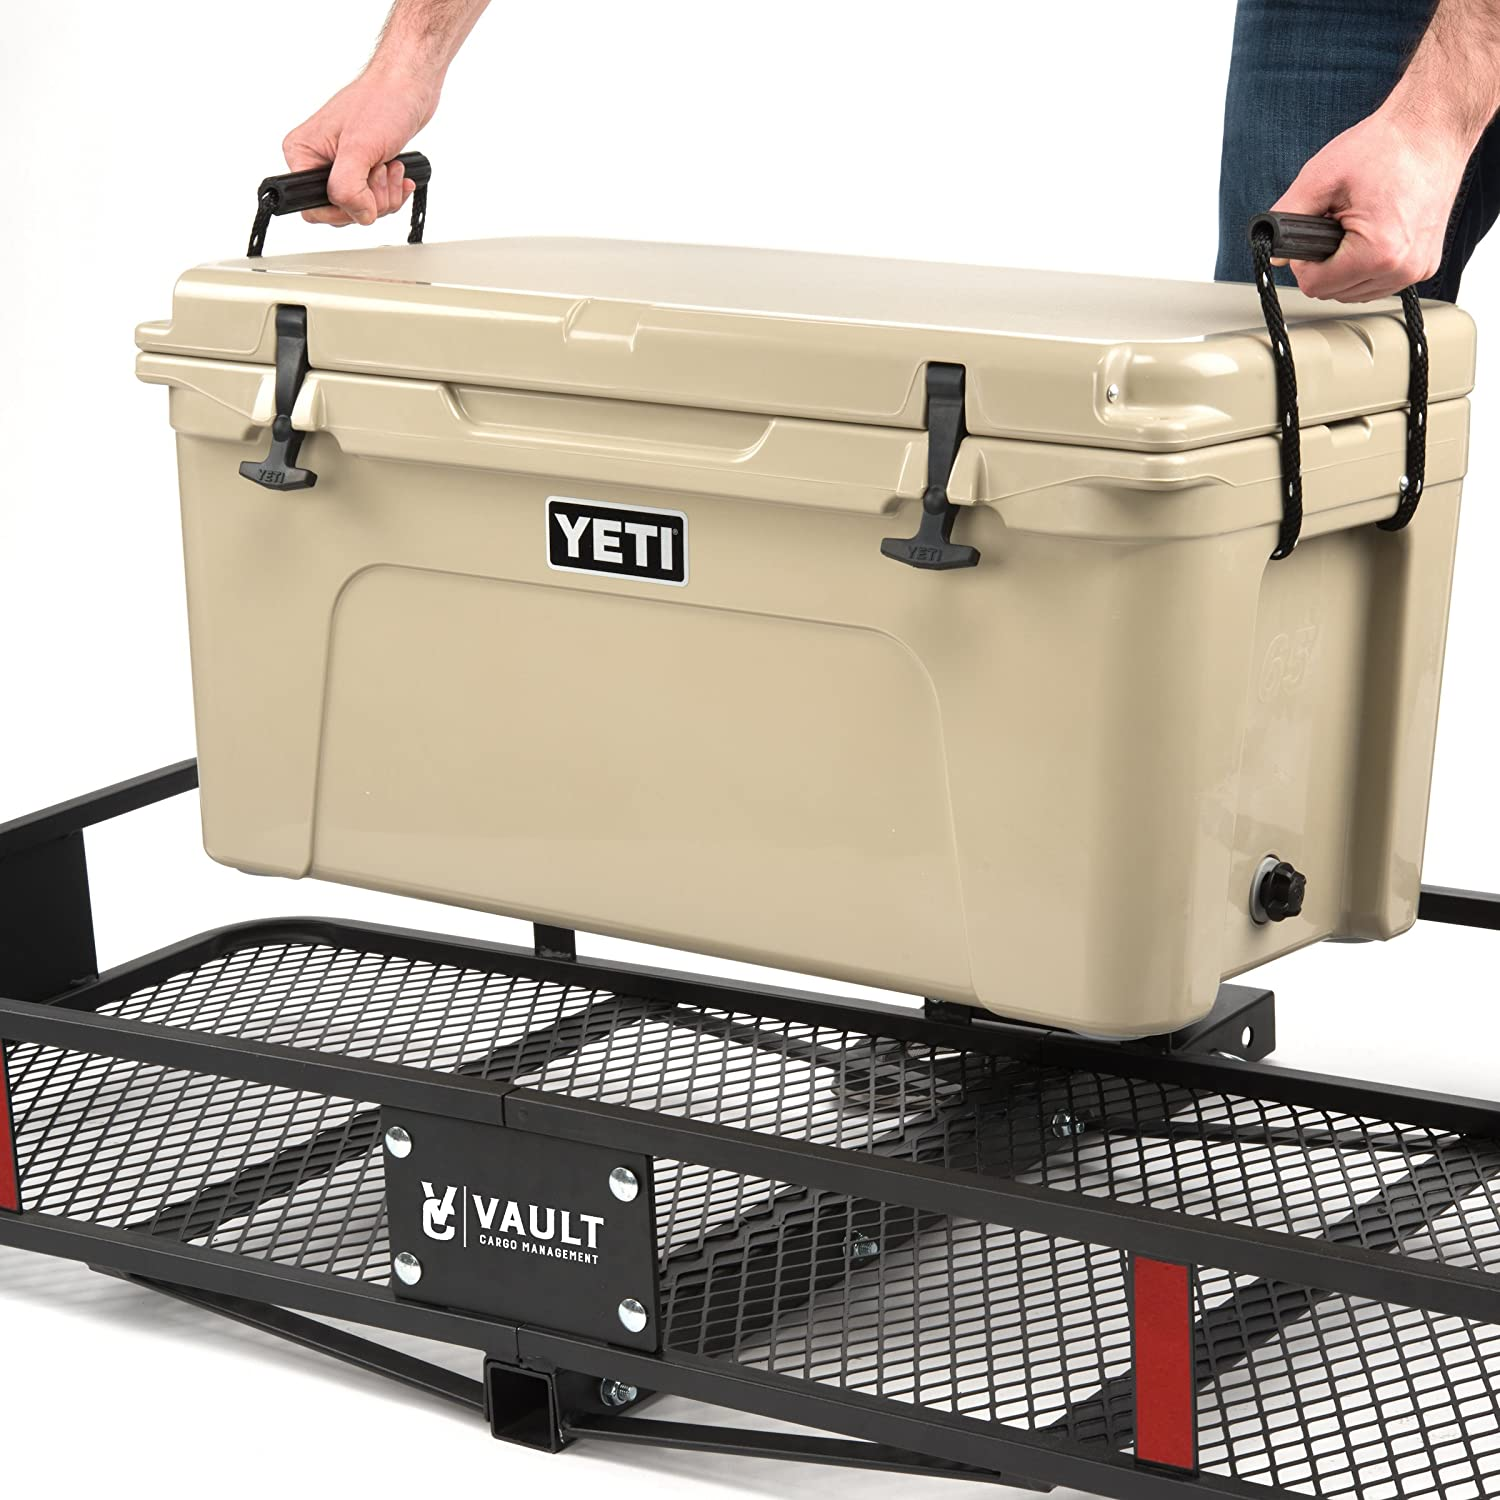 Steel Storage Rack & Basket made our list of unique camping gifts for men which are some of the most cool camping gifts for special occasions and the CampingForFoodies hand selected best camping gifts for him are awesome for the rest of the family too!